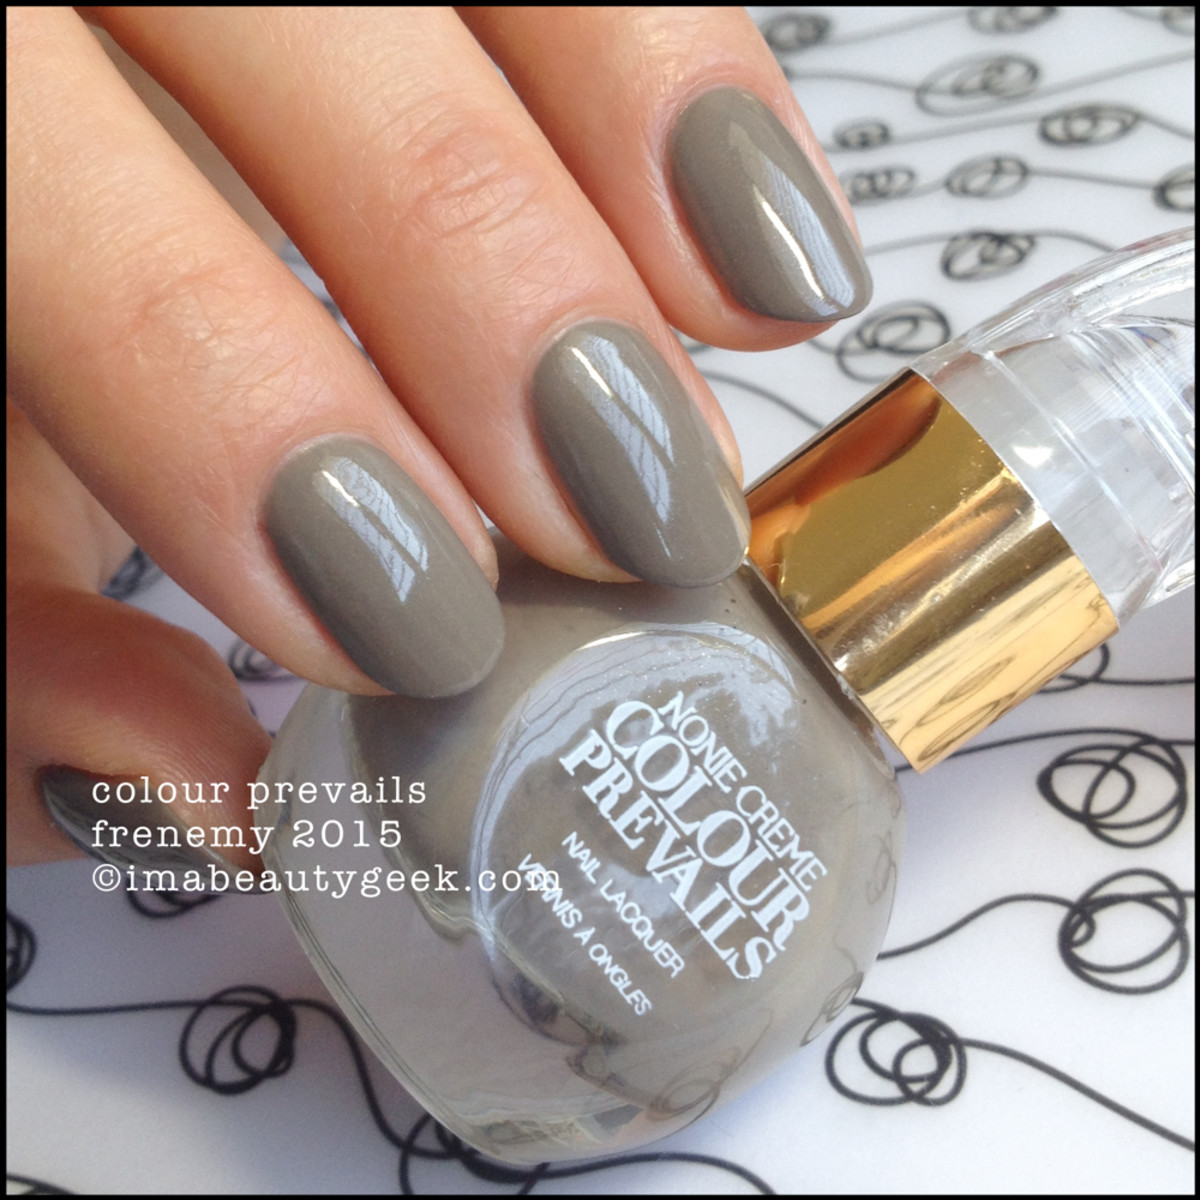 Colour Prevails Frenemy Nail Polish by Nonie Creme